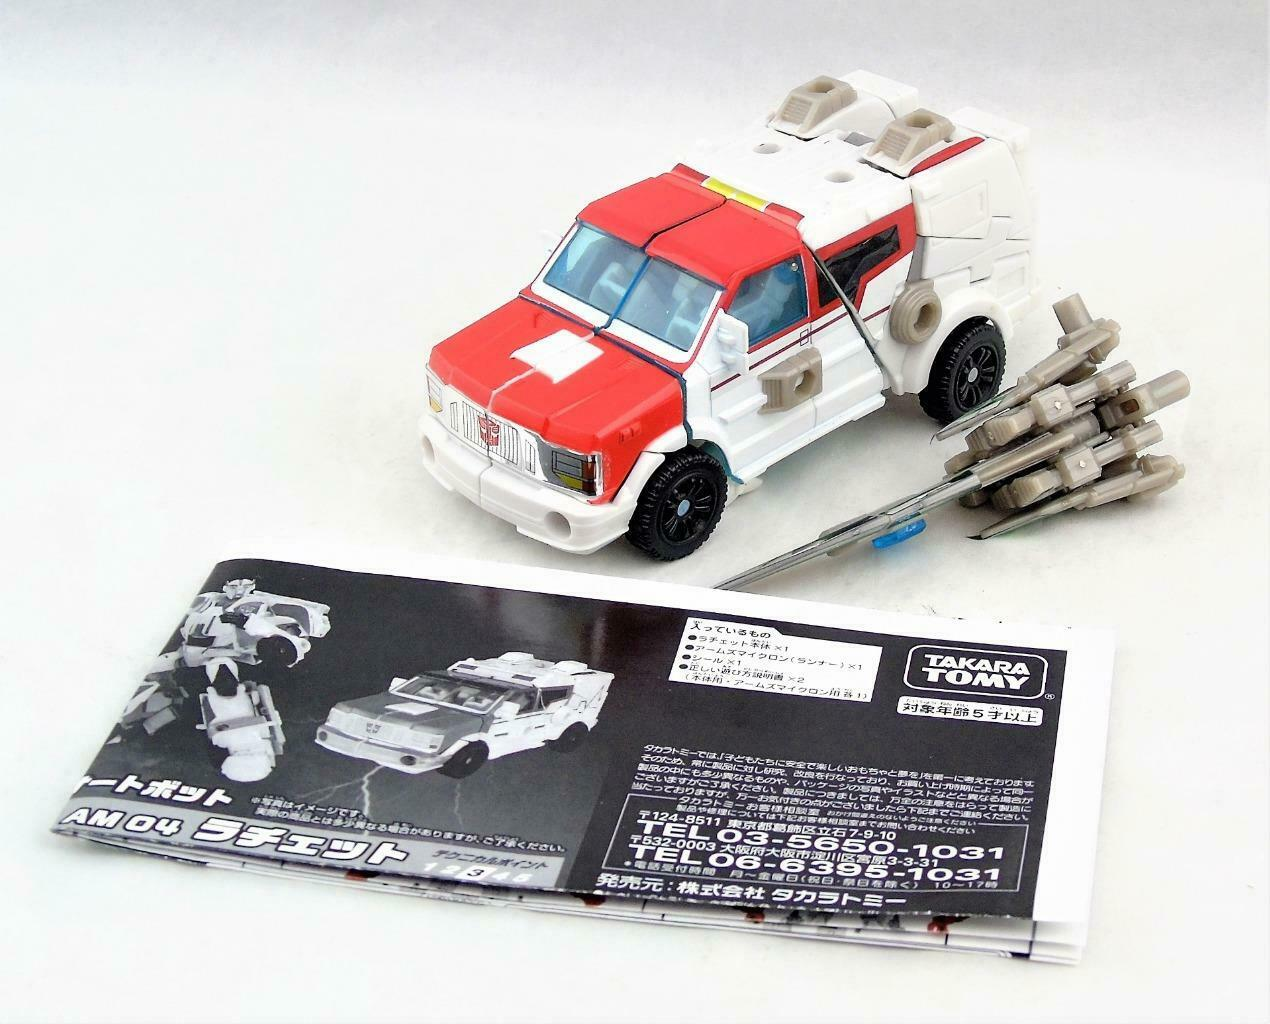 Transformers Prime Takara Japanese Release Deluxe Class Ratchet Complete AM-04